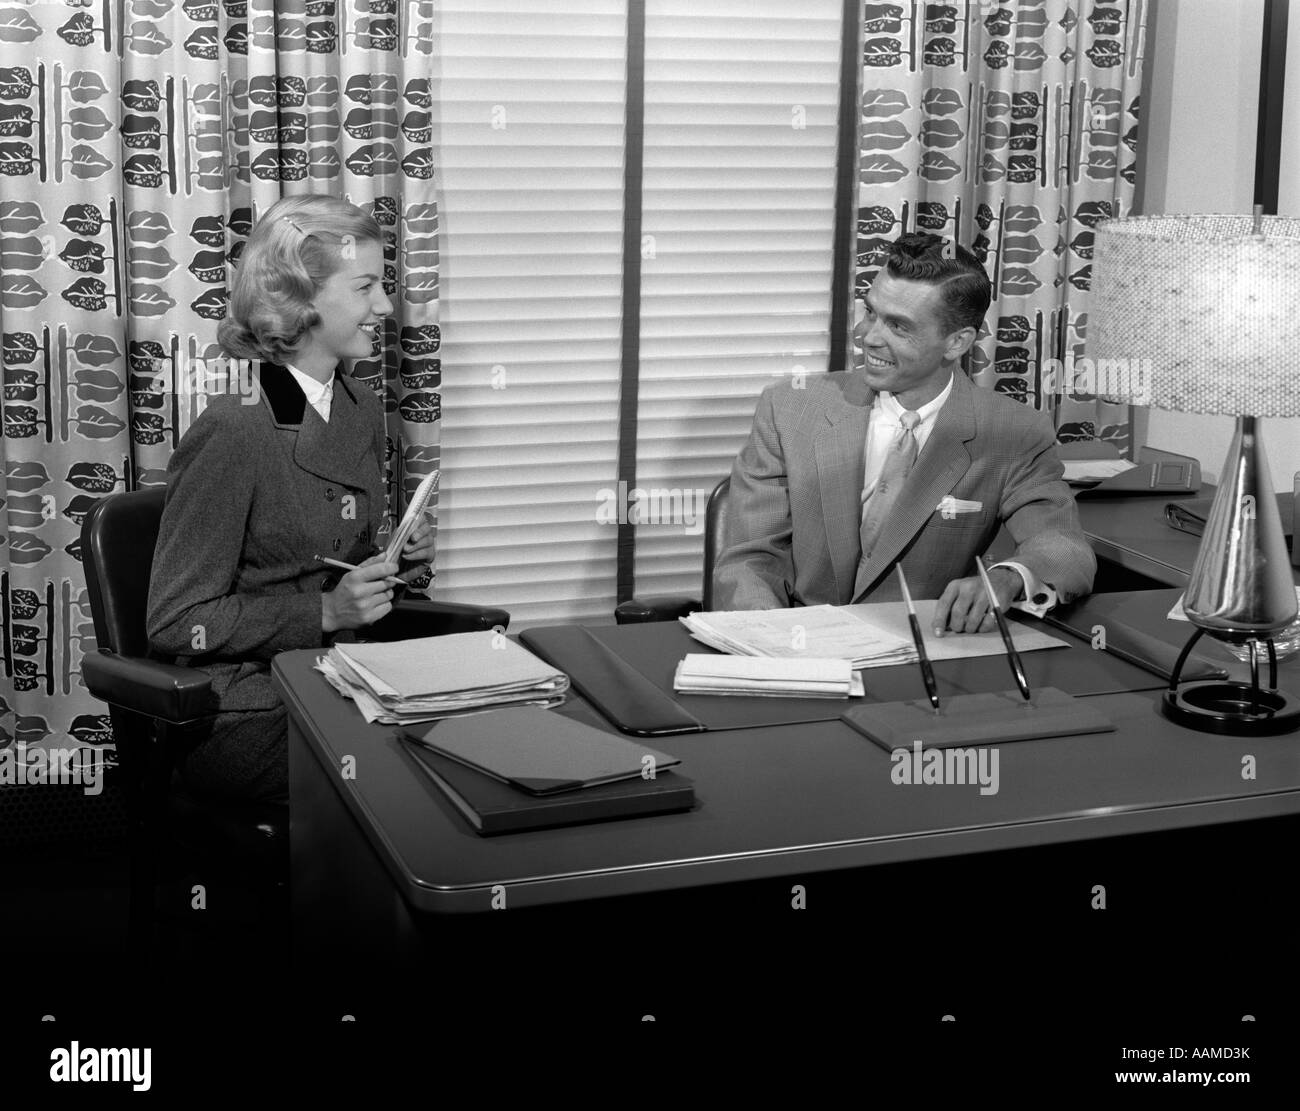 1950s Office Stock Photos Amp 1950s Office Stock Images Alamy